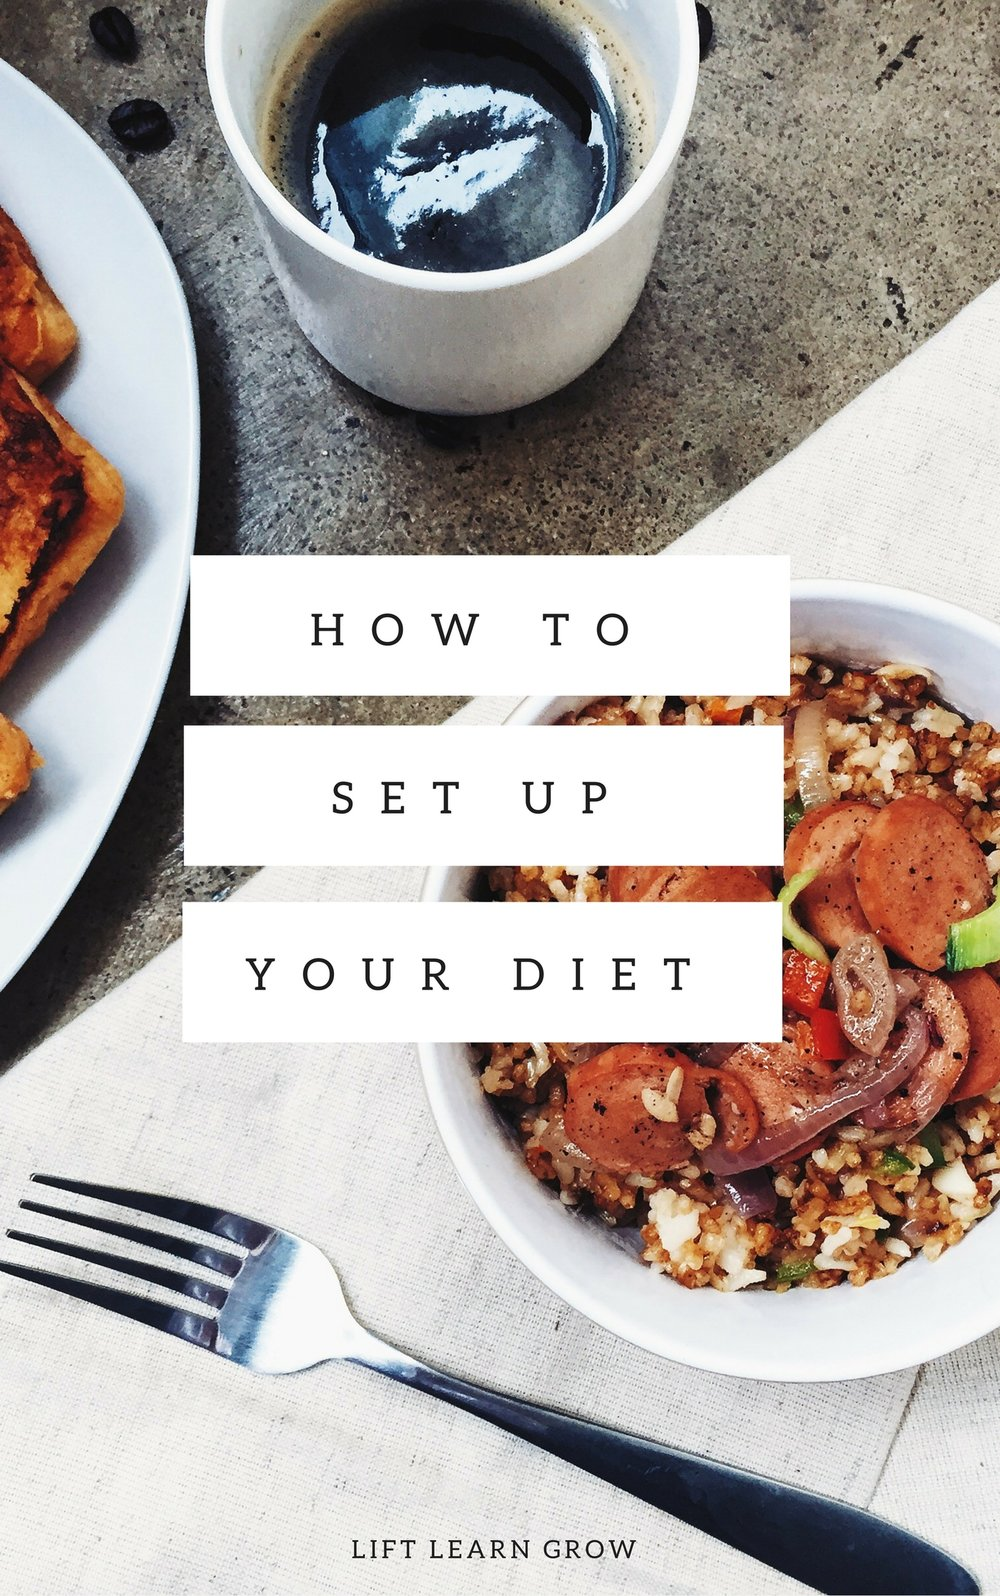 How To Set up Your Diet E-book